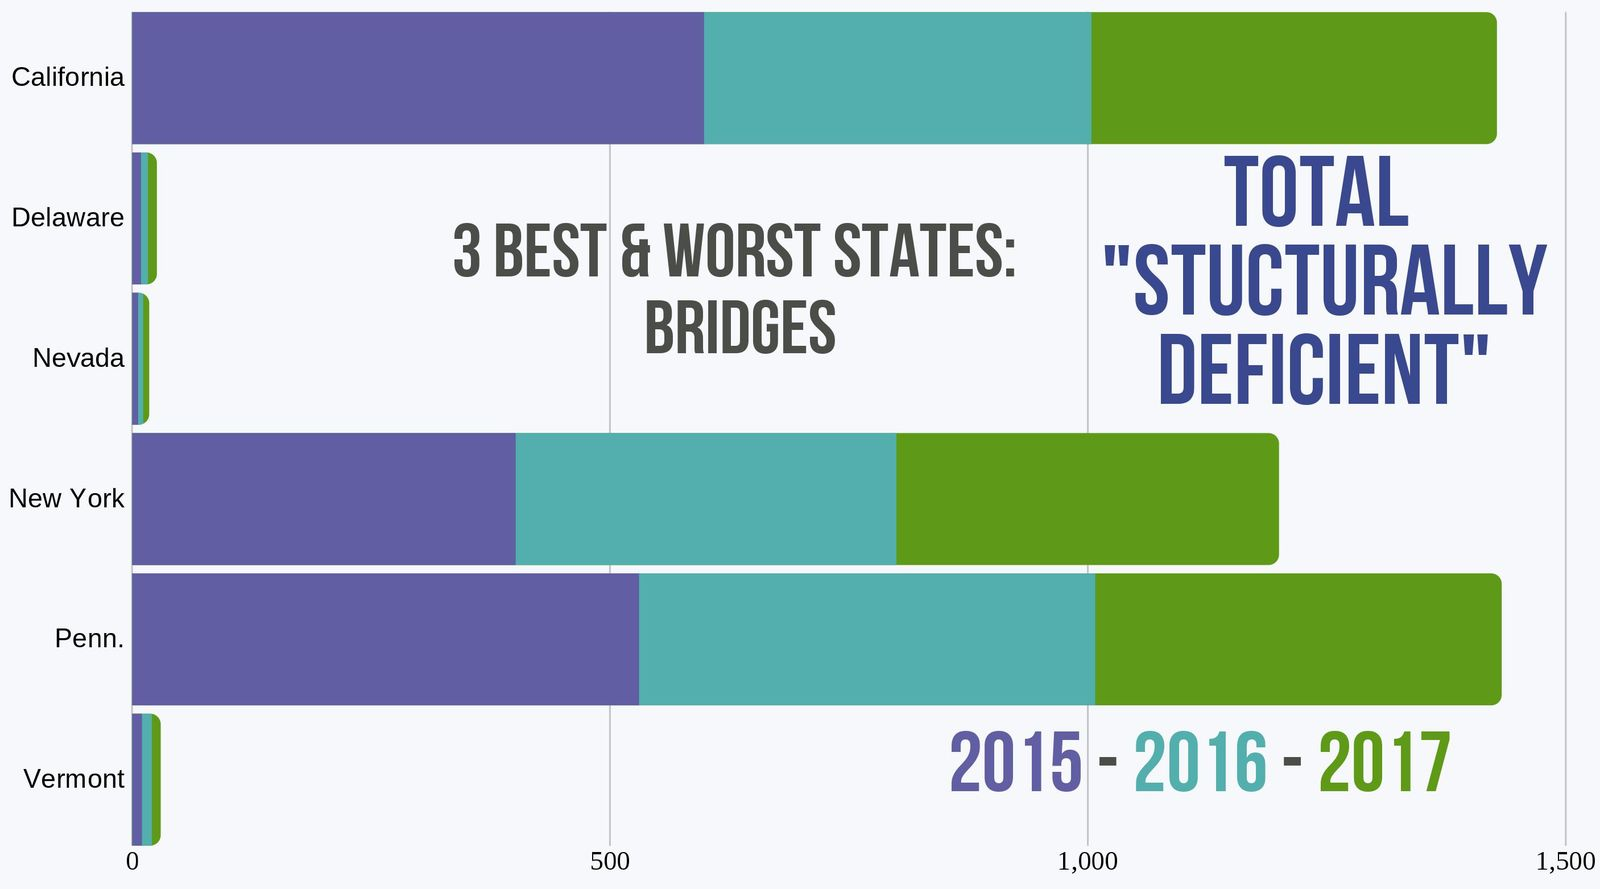 Number of Structurally Deficient Bridges in 6 states '15-'17